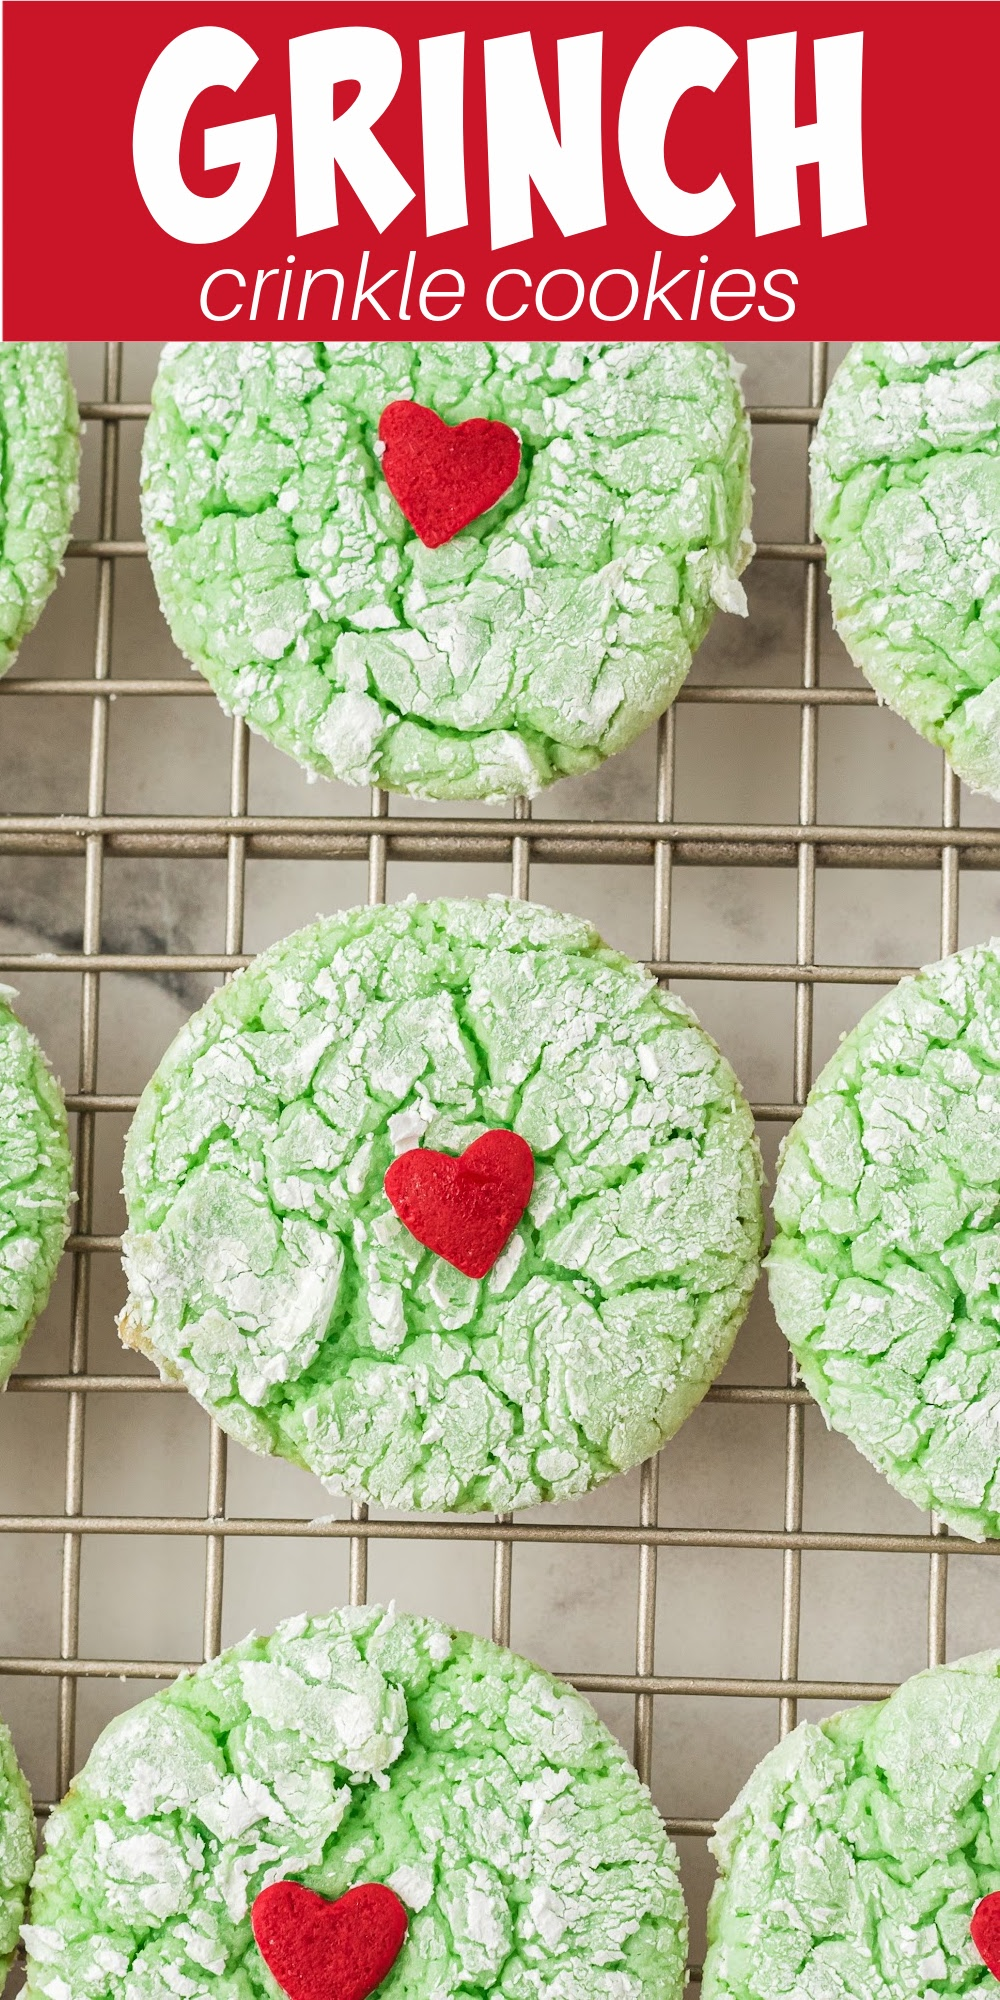 Grinch crinkle cookies are an easy cake mix cookie that's soft and delicious! These fun treats have a huge red sprinkle in the center of the soft cookie that kids and adults love.